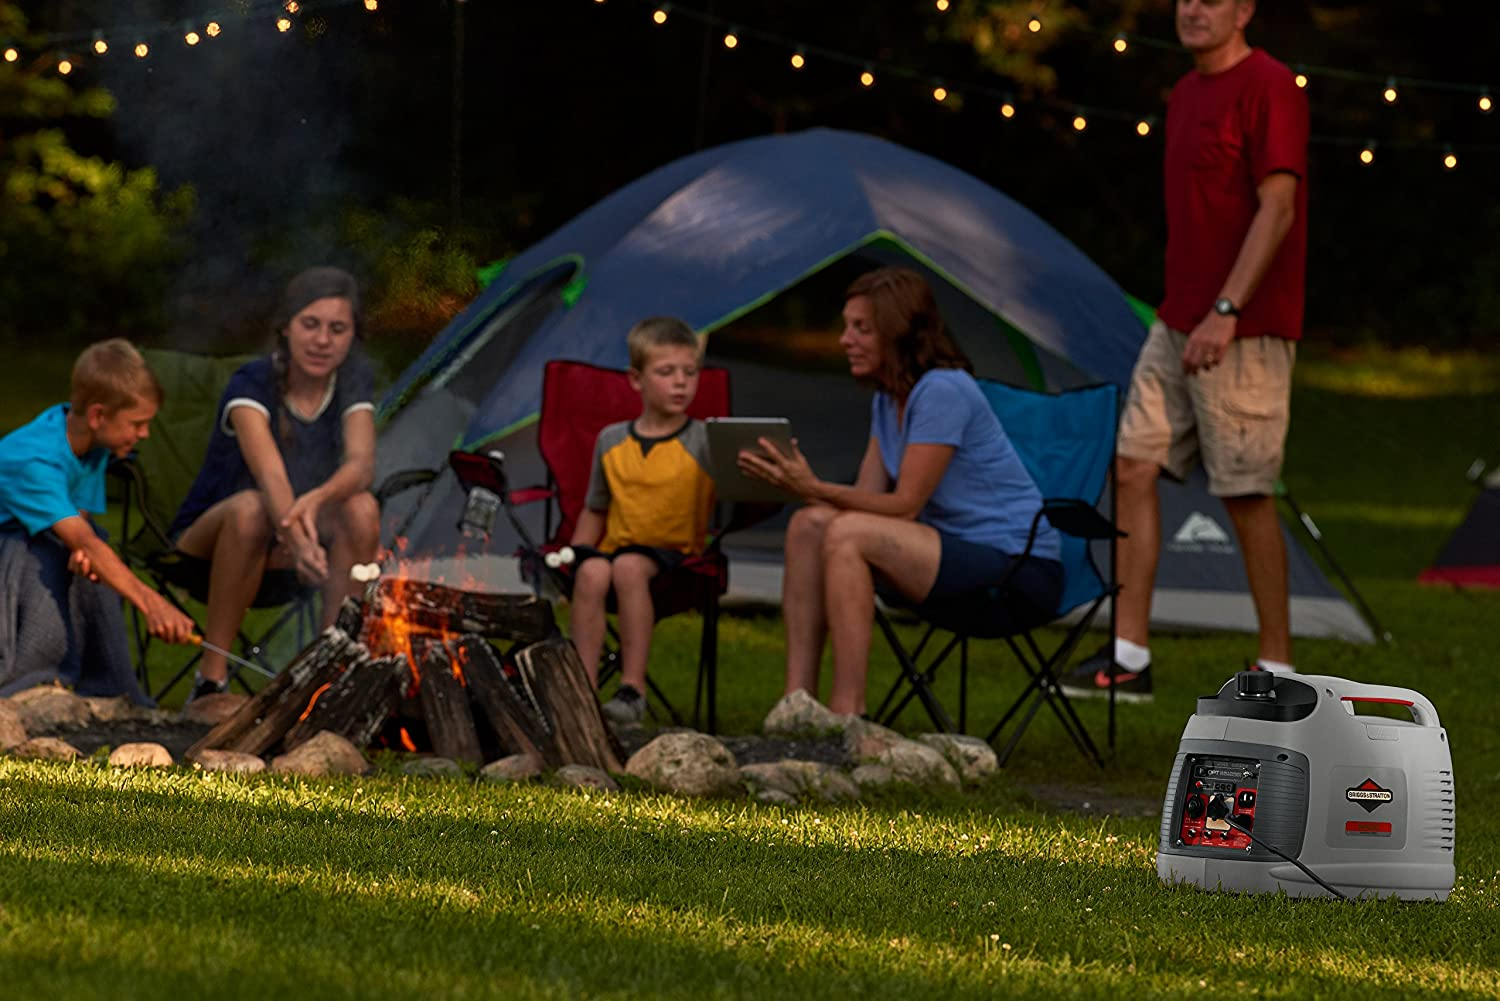 Briggs & Stratton 30651 performs well for campers